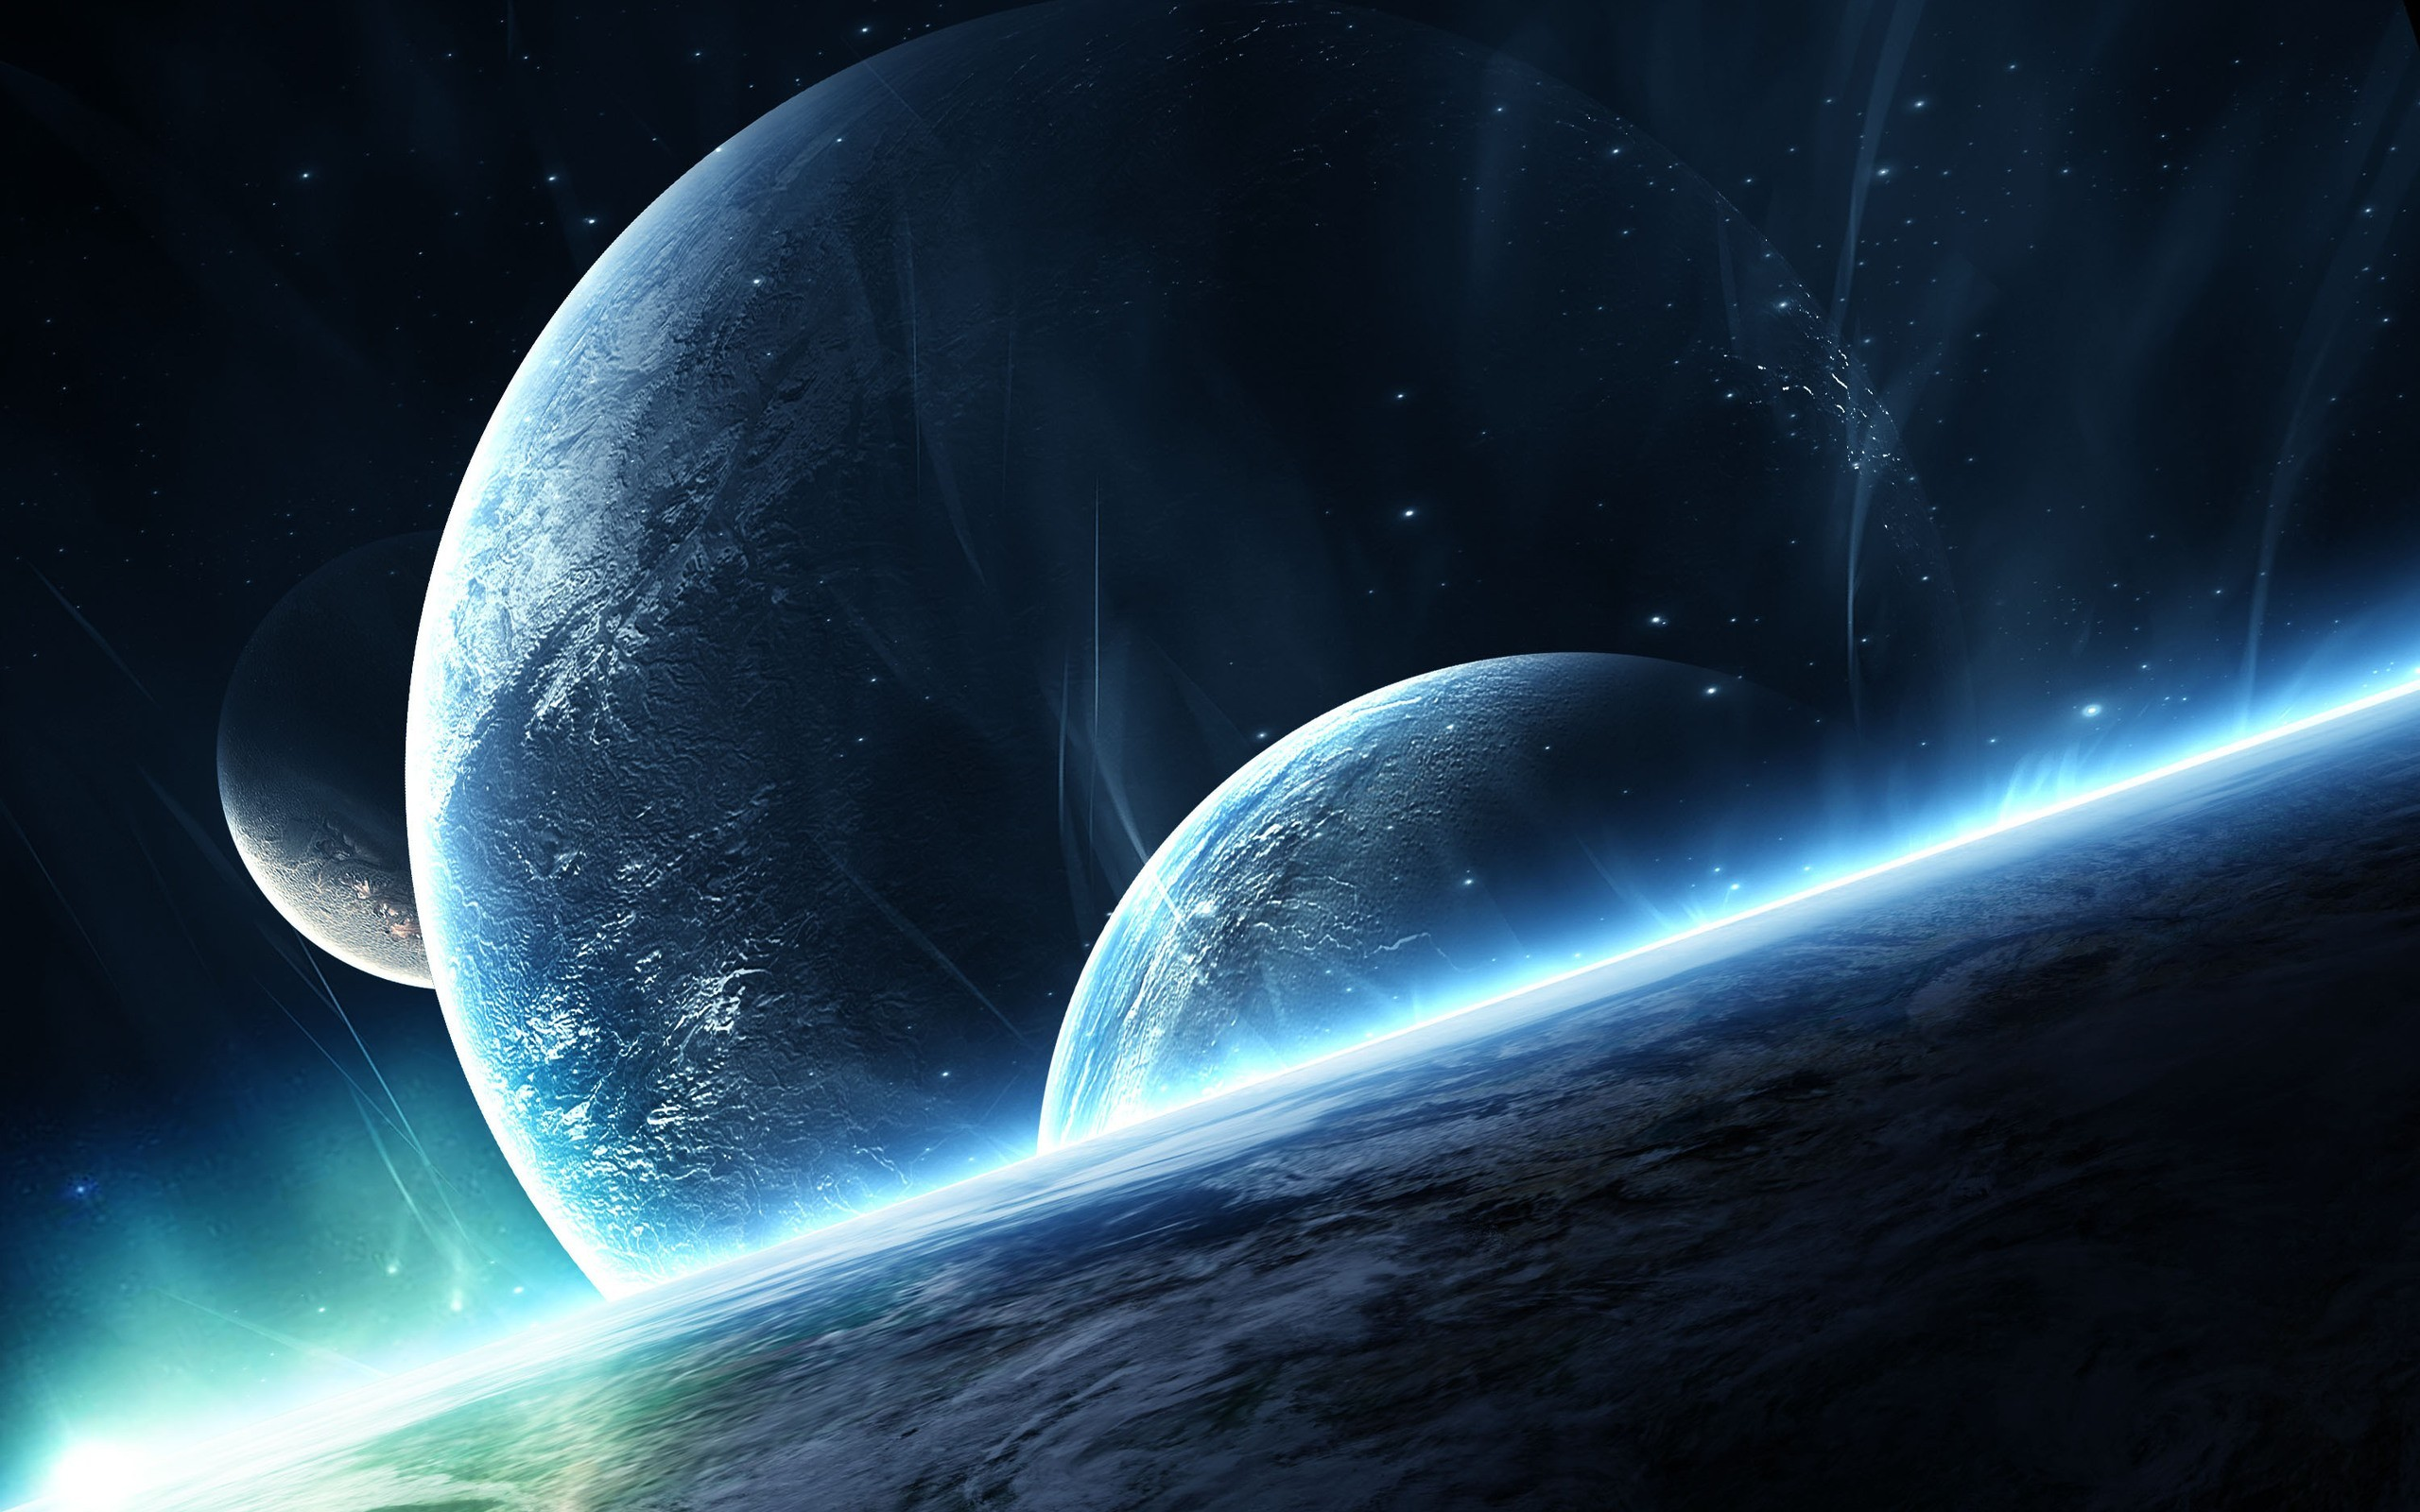 2560x1600 Outer Space Images Free Download by Hisham Chattey